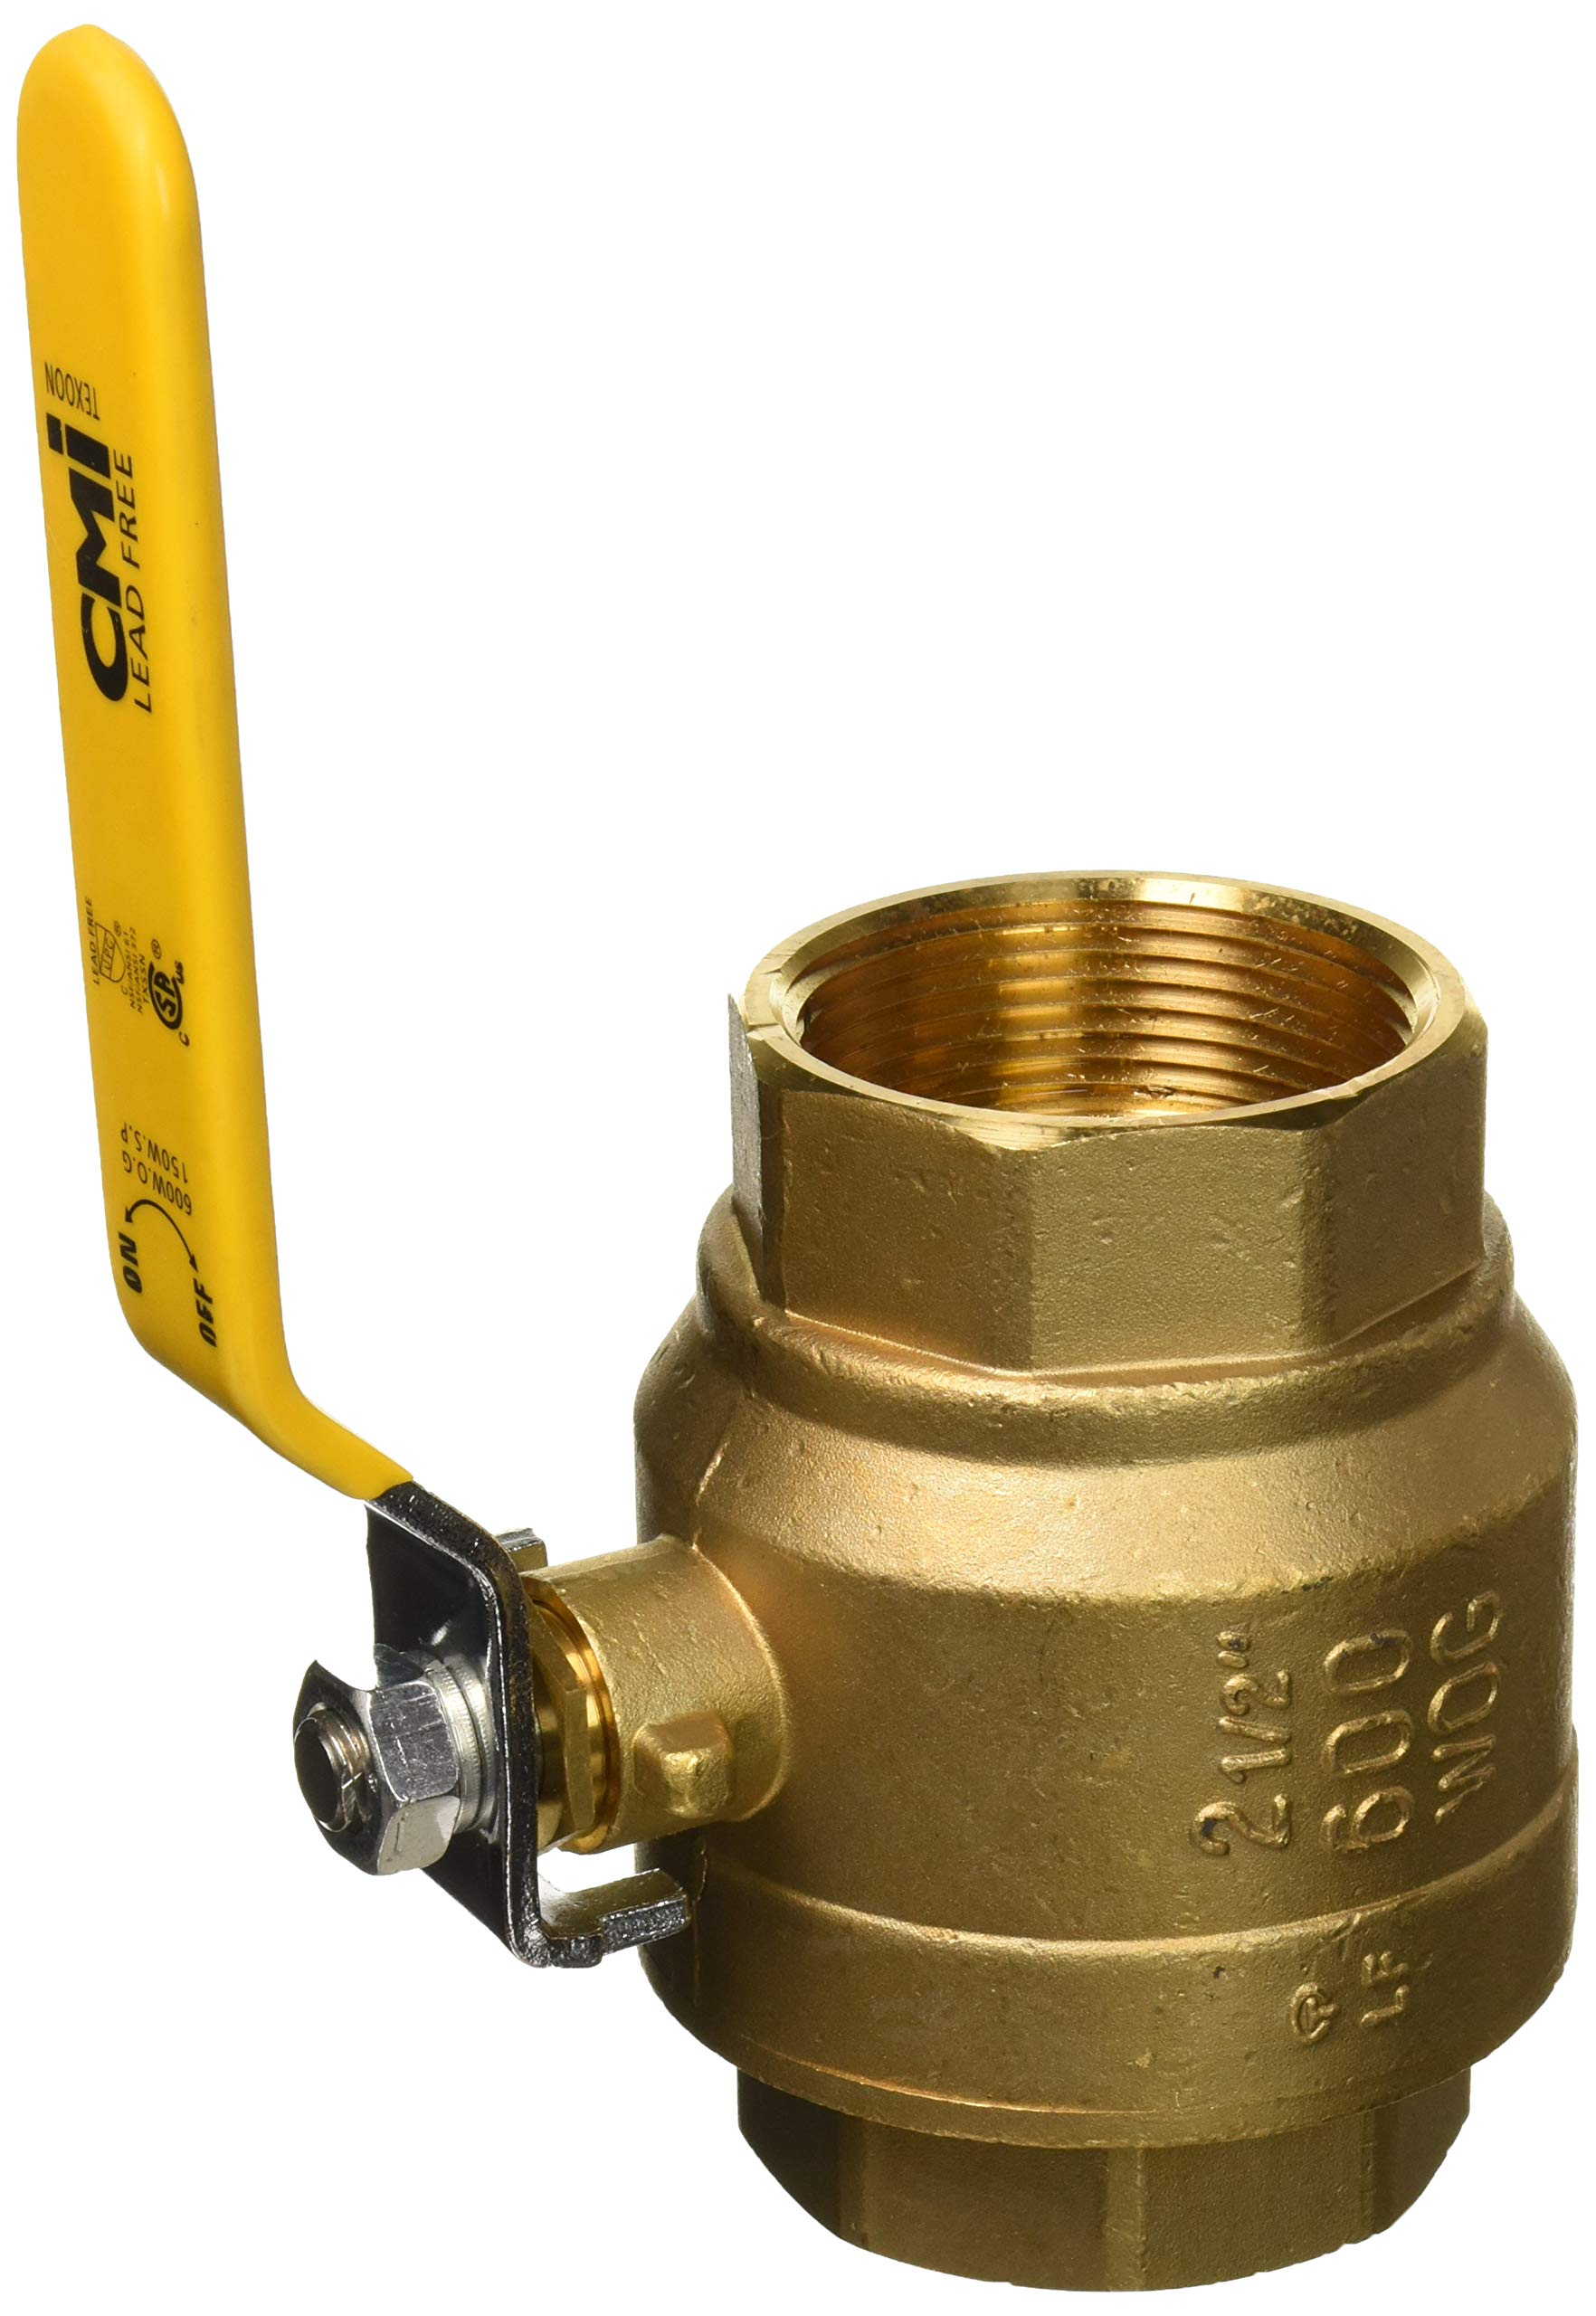 """2-1/2"""" Brass Ball Valve Threaded - IPS Full Port Irrigation Water Valves - Mechanical Lead Free Lever Handle 2 1/2-Inch Female Thread Inline Steam Oil 600 WOG Supplies Hot Cold Pipes CSA ApprovedF"""